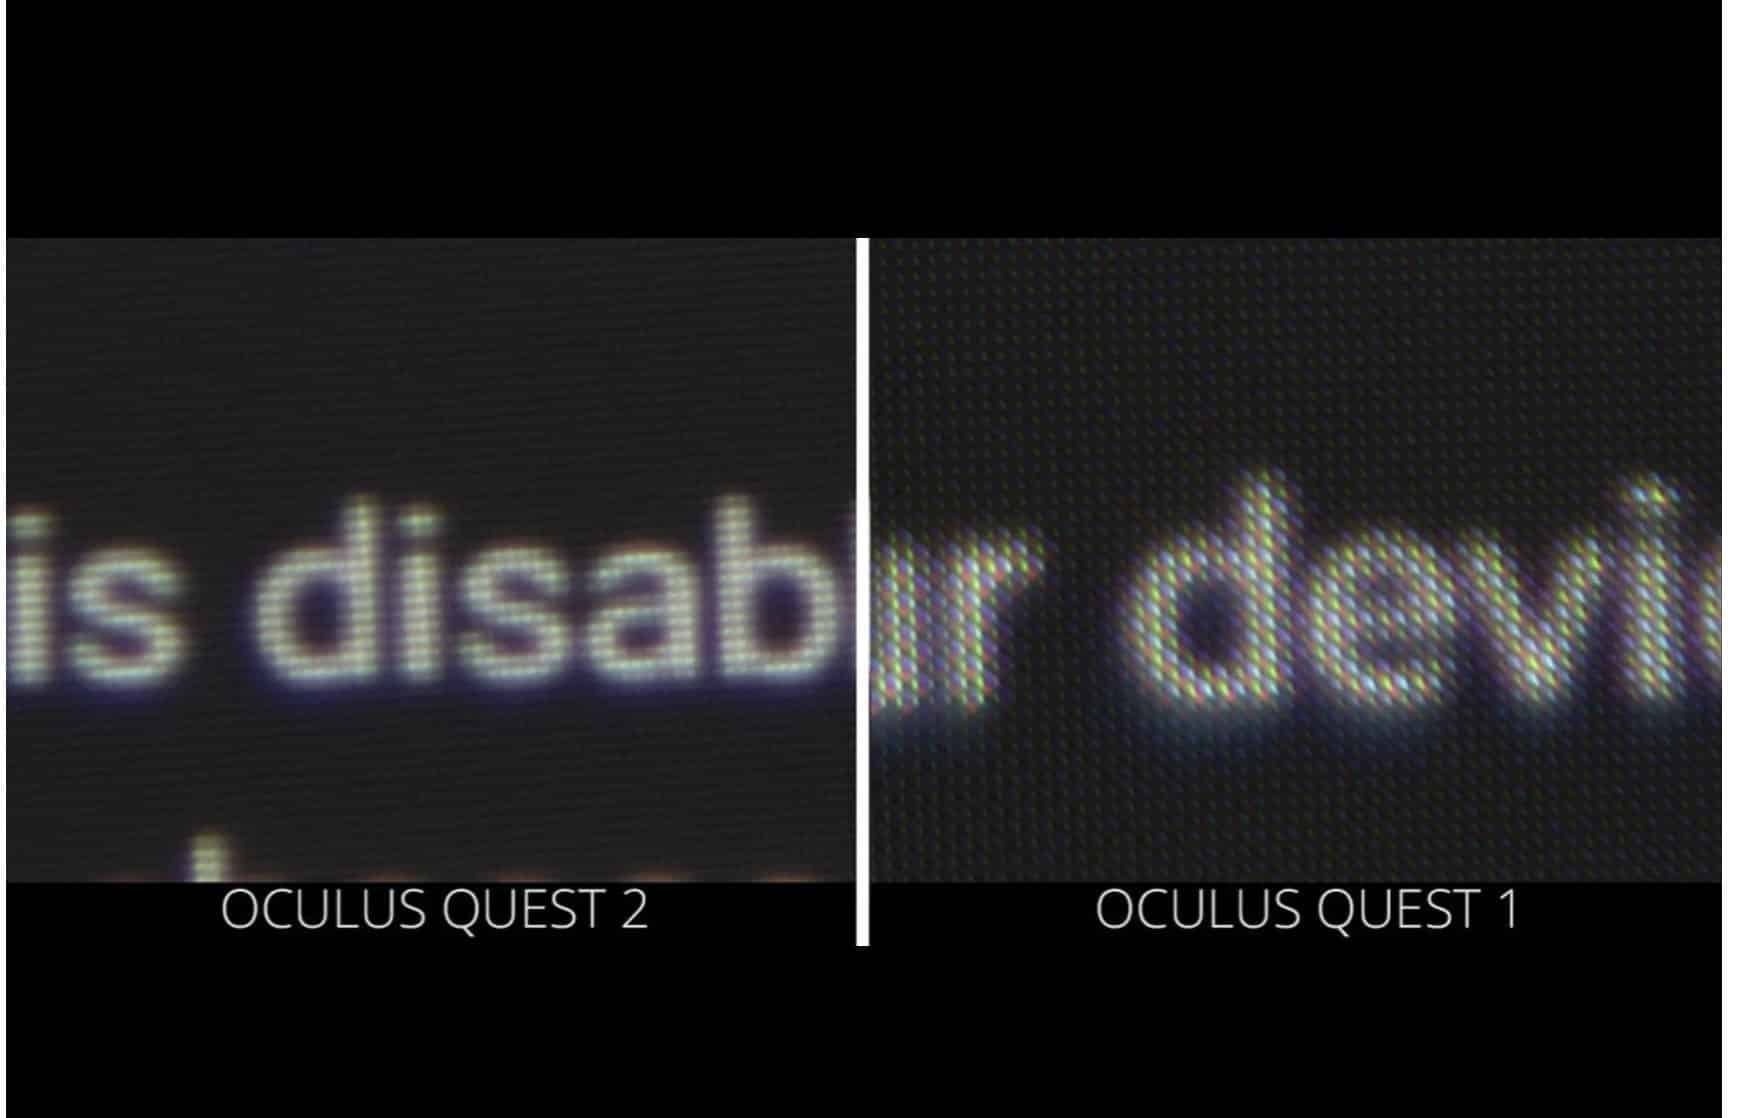 Comparison of the displays in the Oculus Quest 1 and Quest 2.